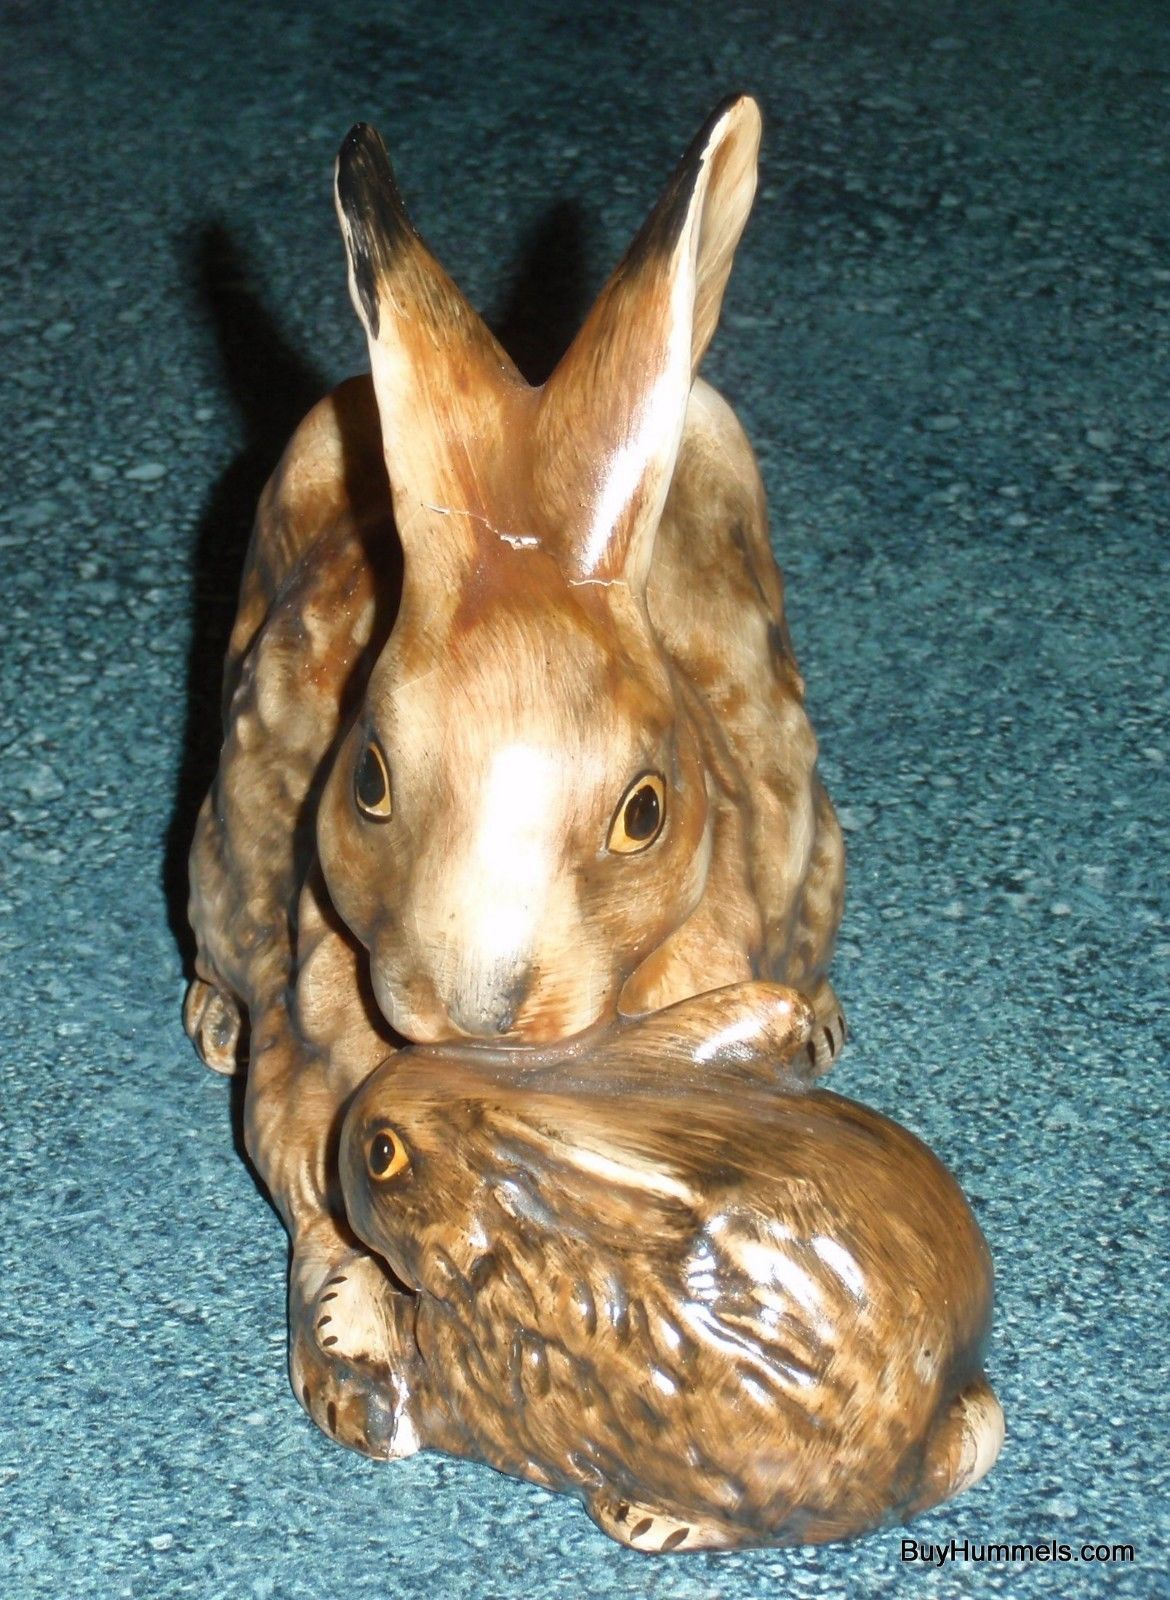 1975 Goebel Figurine Mother's Series West Germany Brown Rabbits 34 301-1 - GIFT!